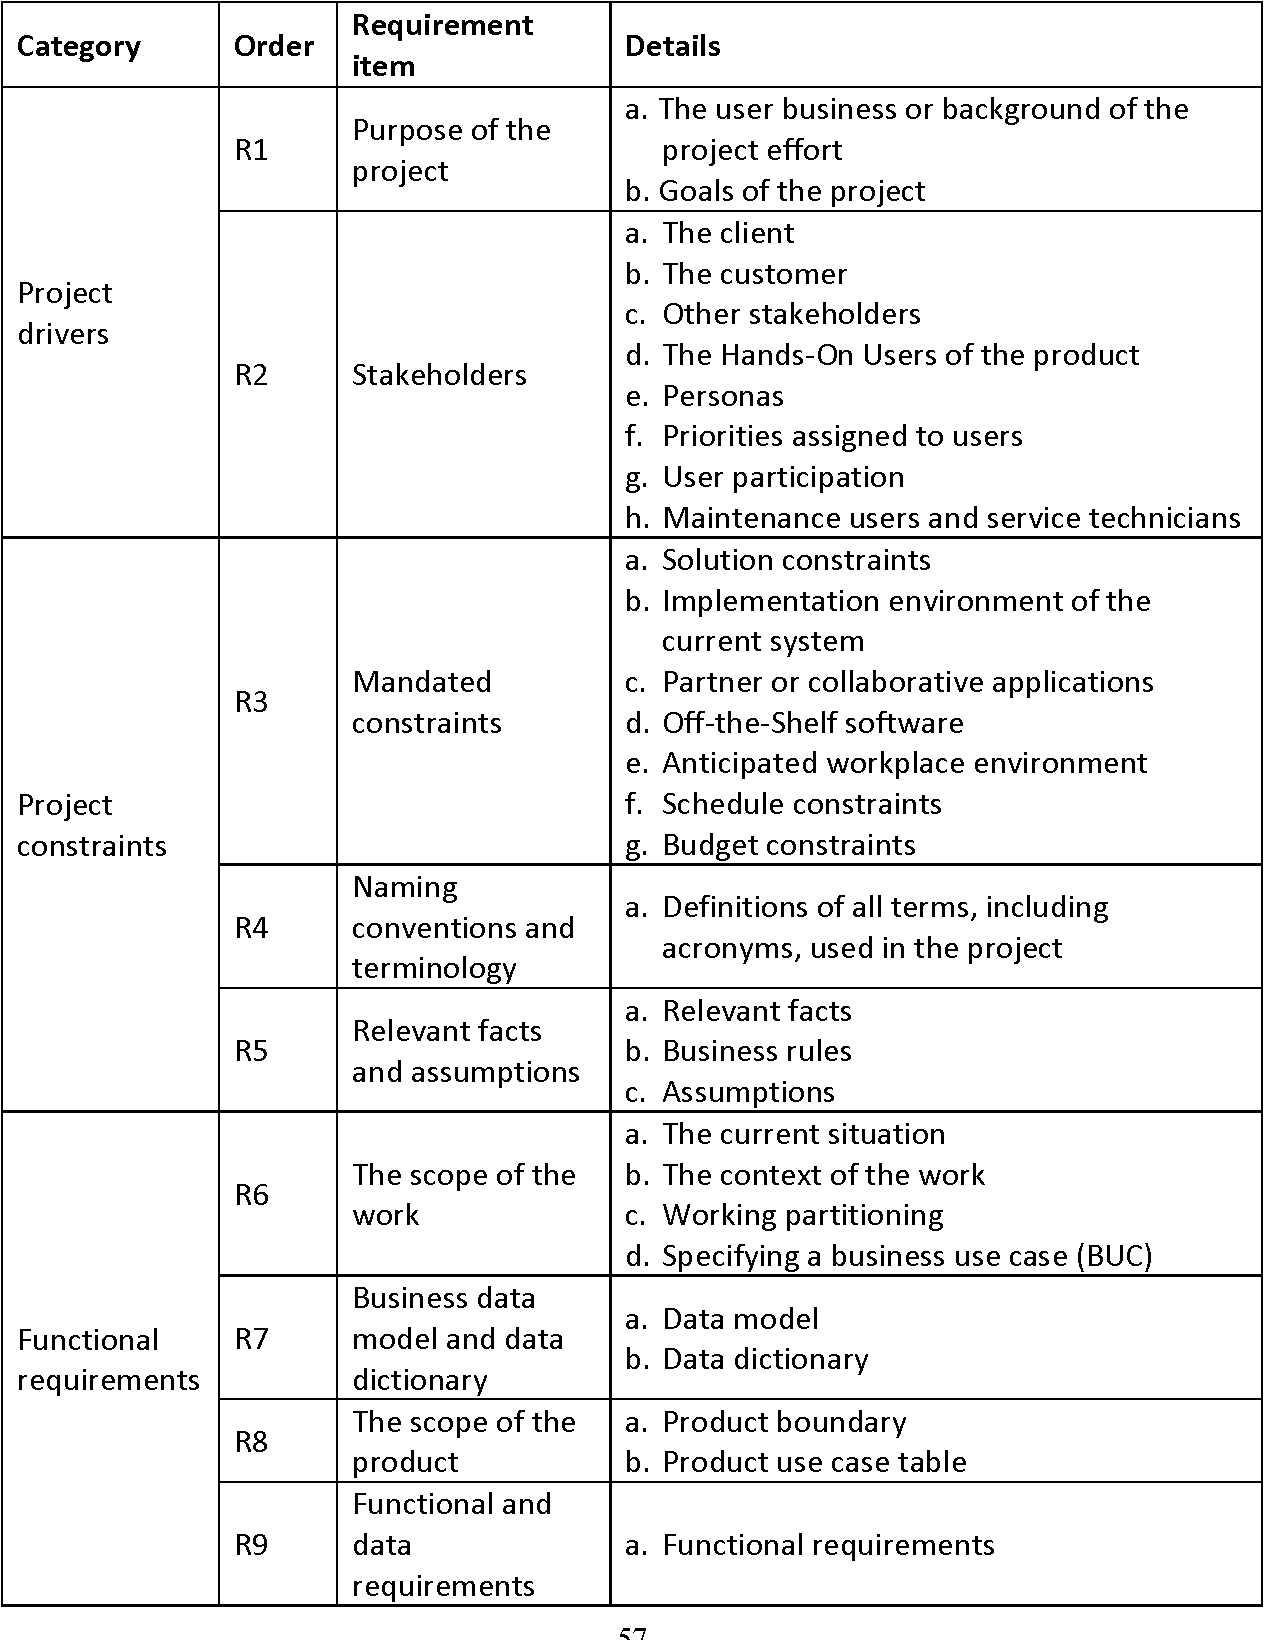 Table 4-1 from Requirements Modeling: from Natural Language to